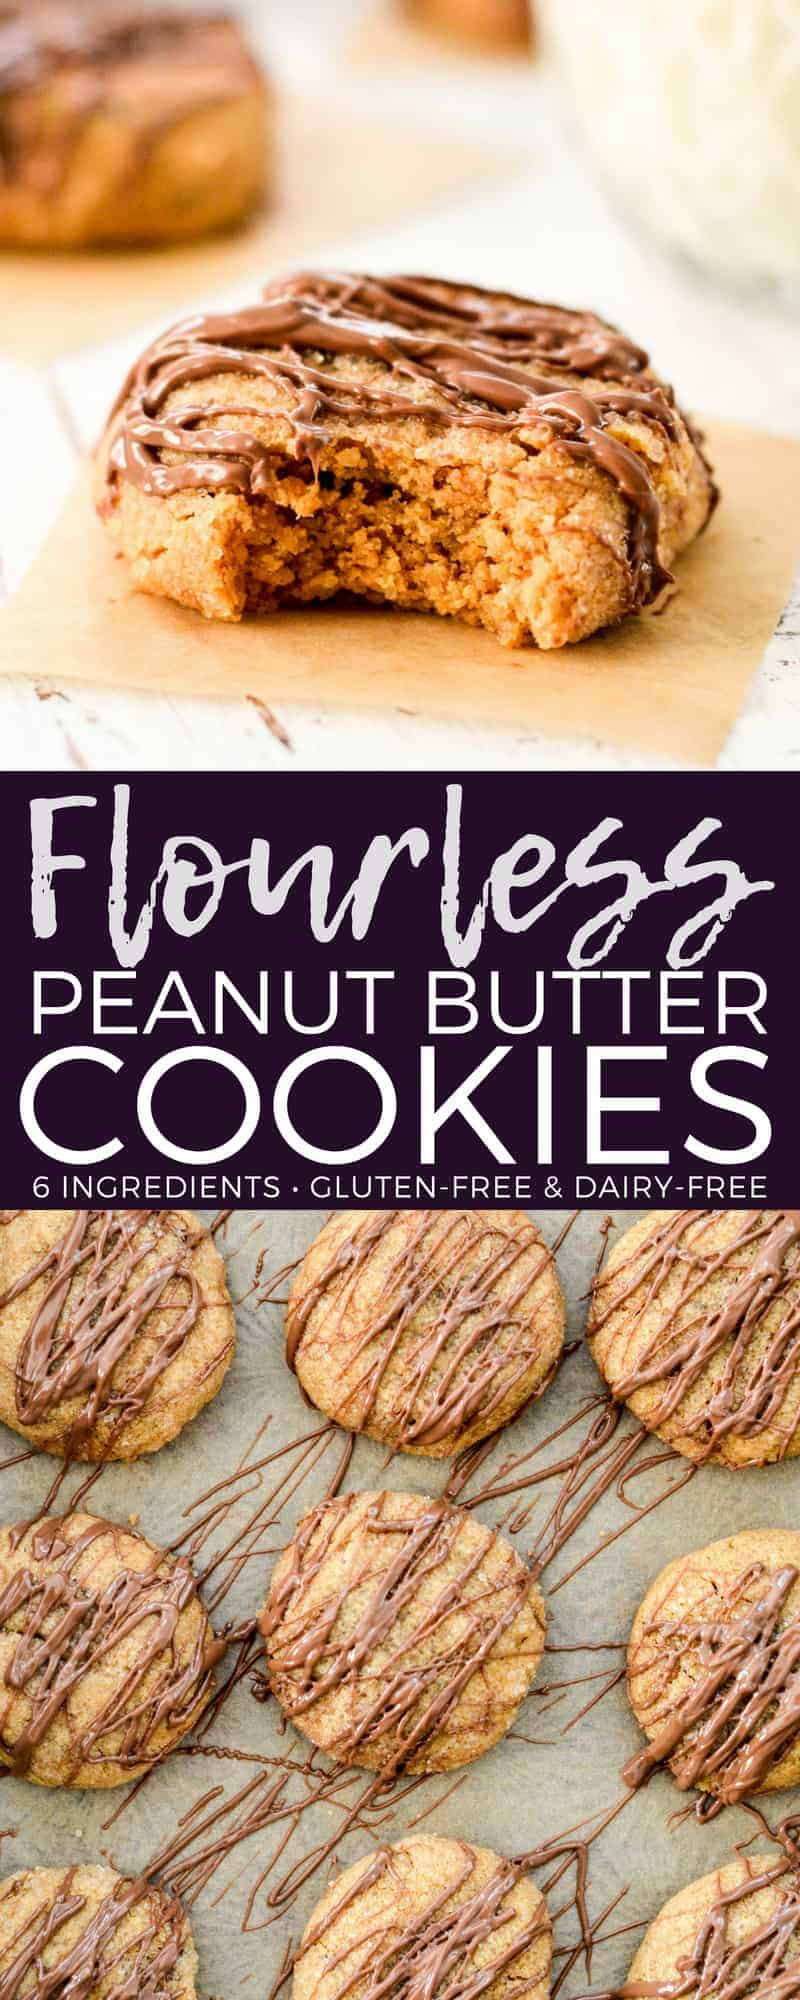 Flourless Peanut Butter Cookies are chewy yet still doughy, cookie perfection! This is the easiest recipe ever! It's made with only 6 ingredients and ready in 15 minutes! Gluten & dairy free! #flourless #peanutbutter #cookies #easy #recipe #glutenfree #dairyfree